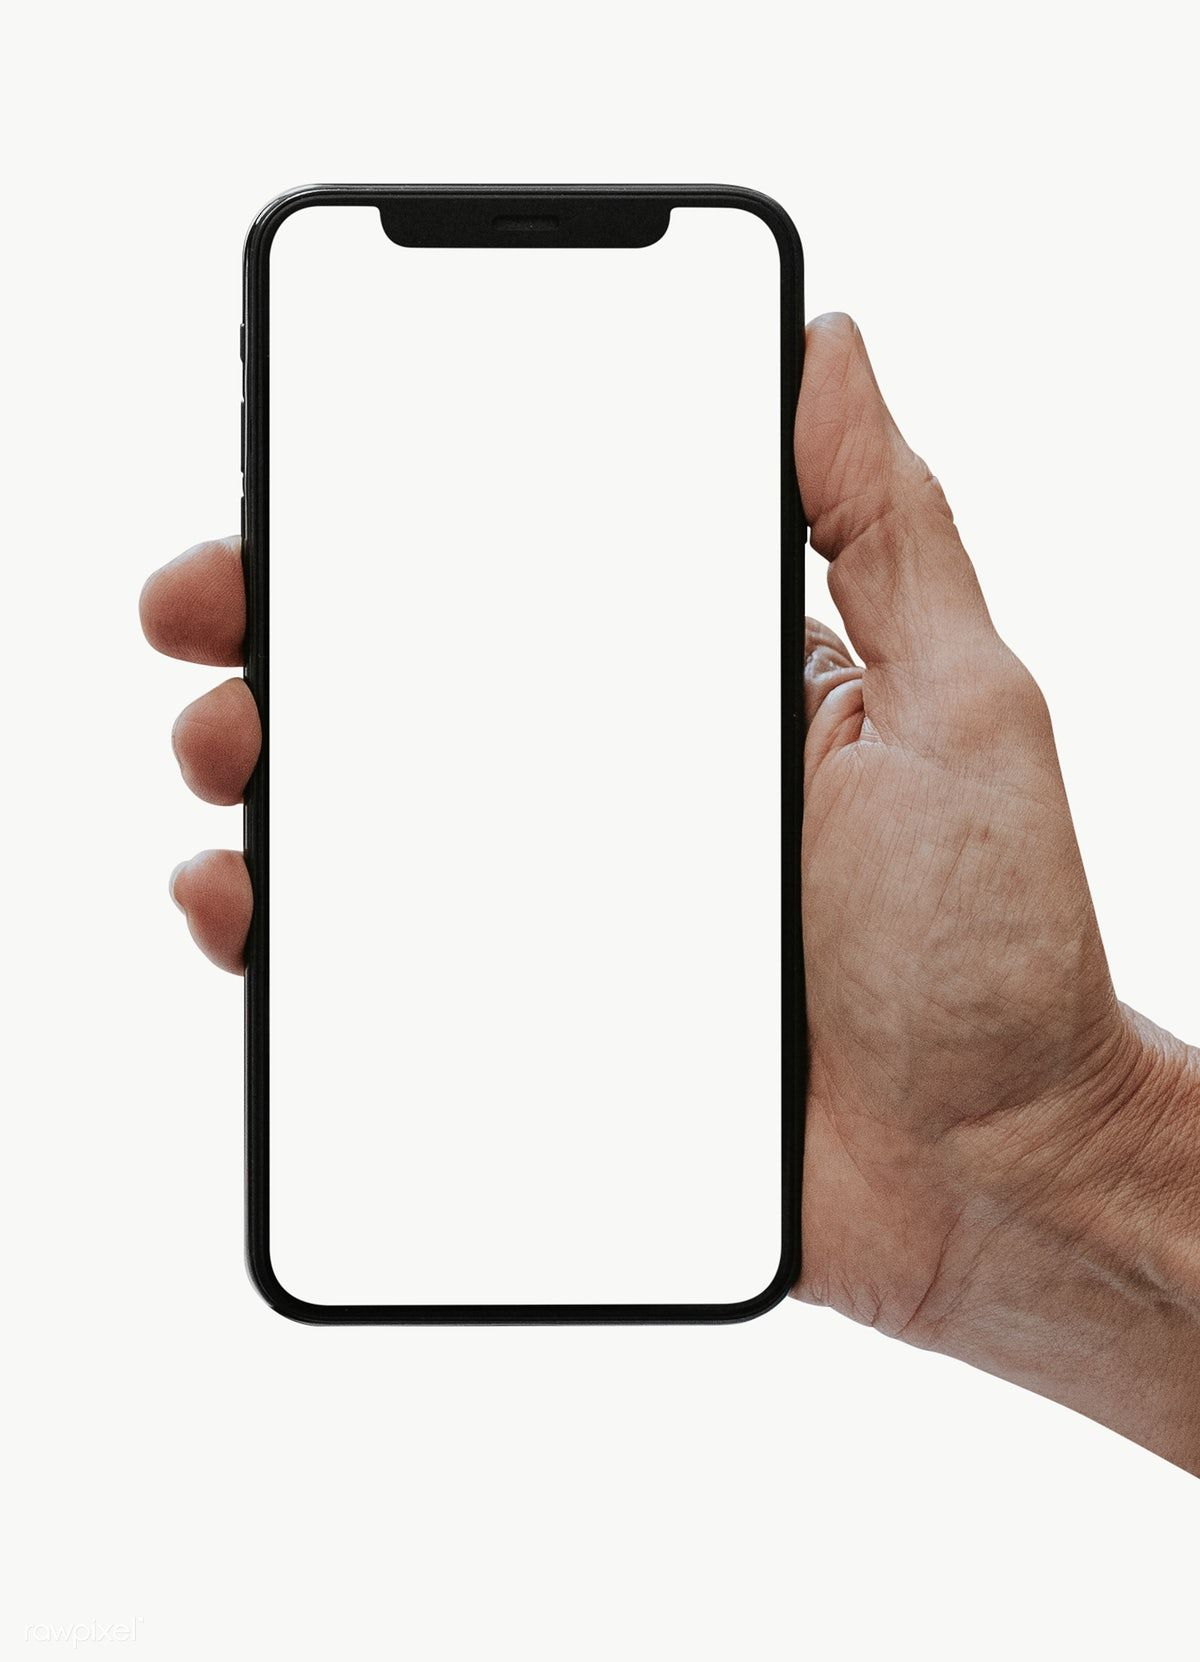 Iphone X In Hand Mockup T Mobile Phones Mobile Phone Phone Cover Design